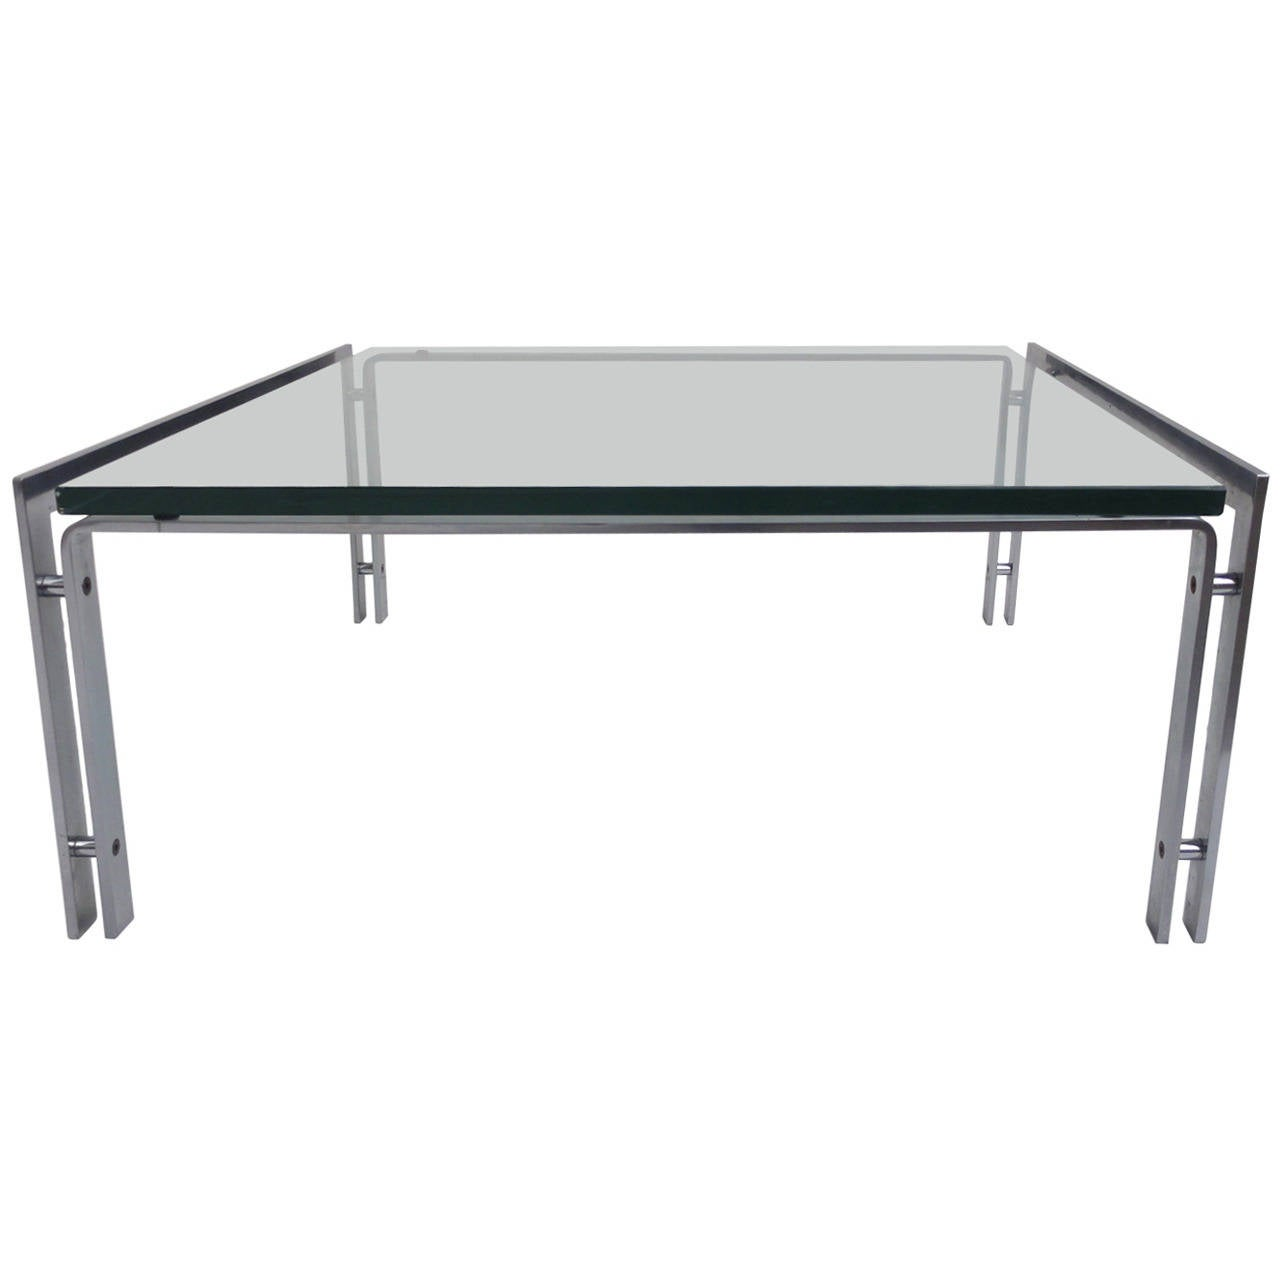 Dutch Metaform Steel and Glass coffee table in the style of Poul Kjaerholm